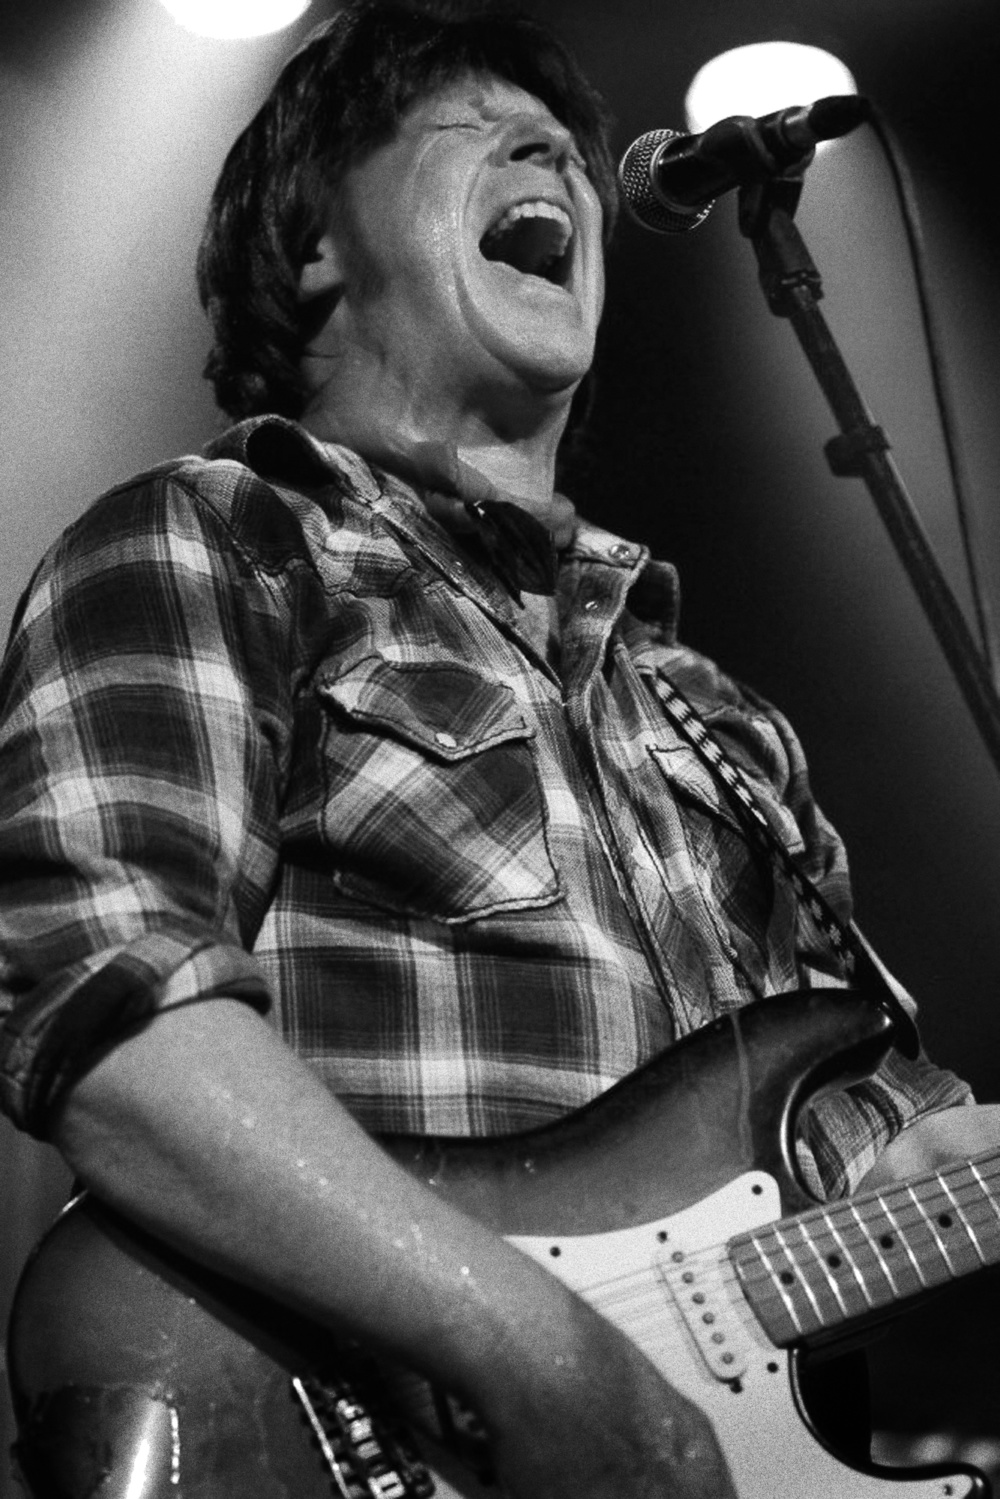 Creedence Clearwater Survival - Melbourne's #1 John Fogerty/CCR Dinner & Show Comes To Arcobar